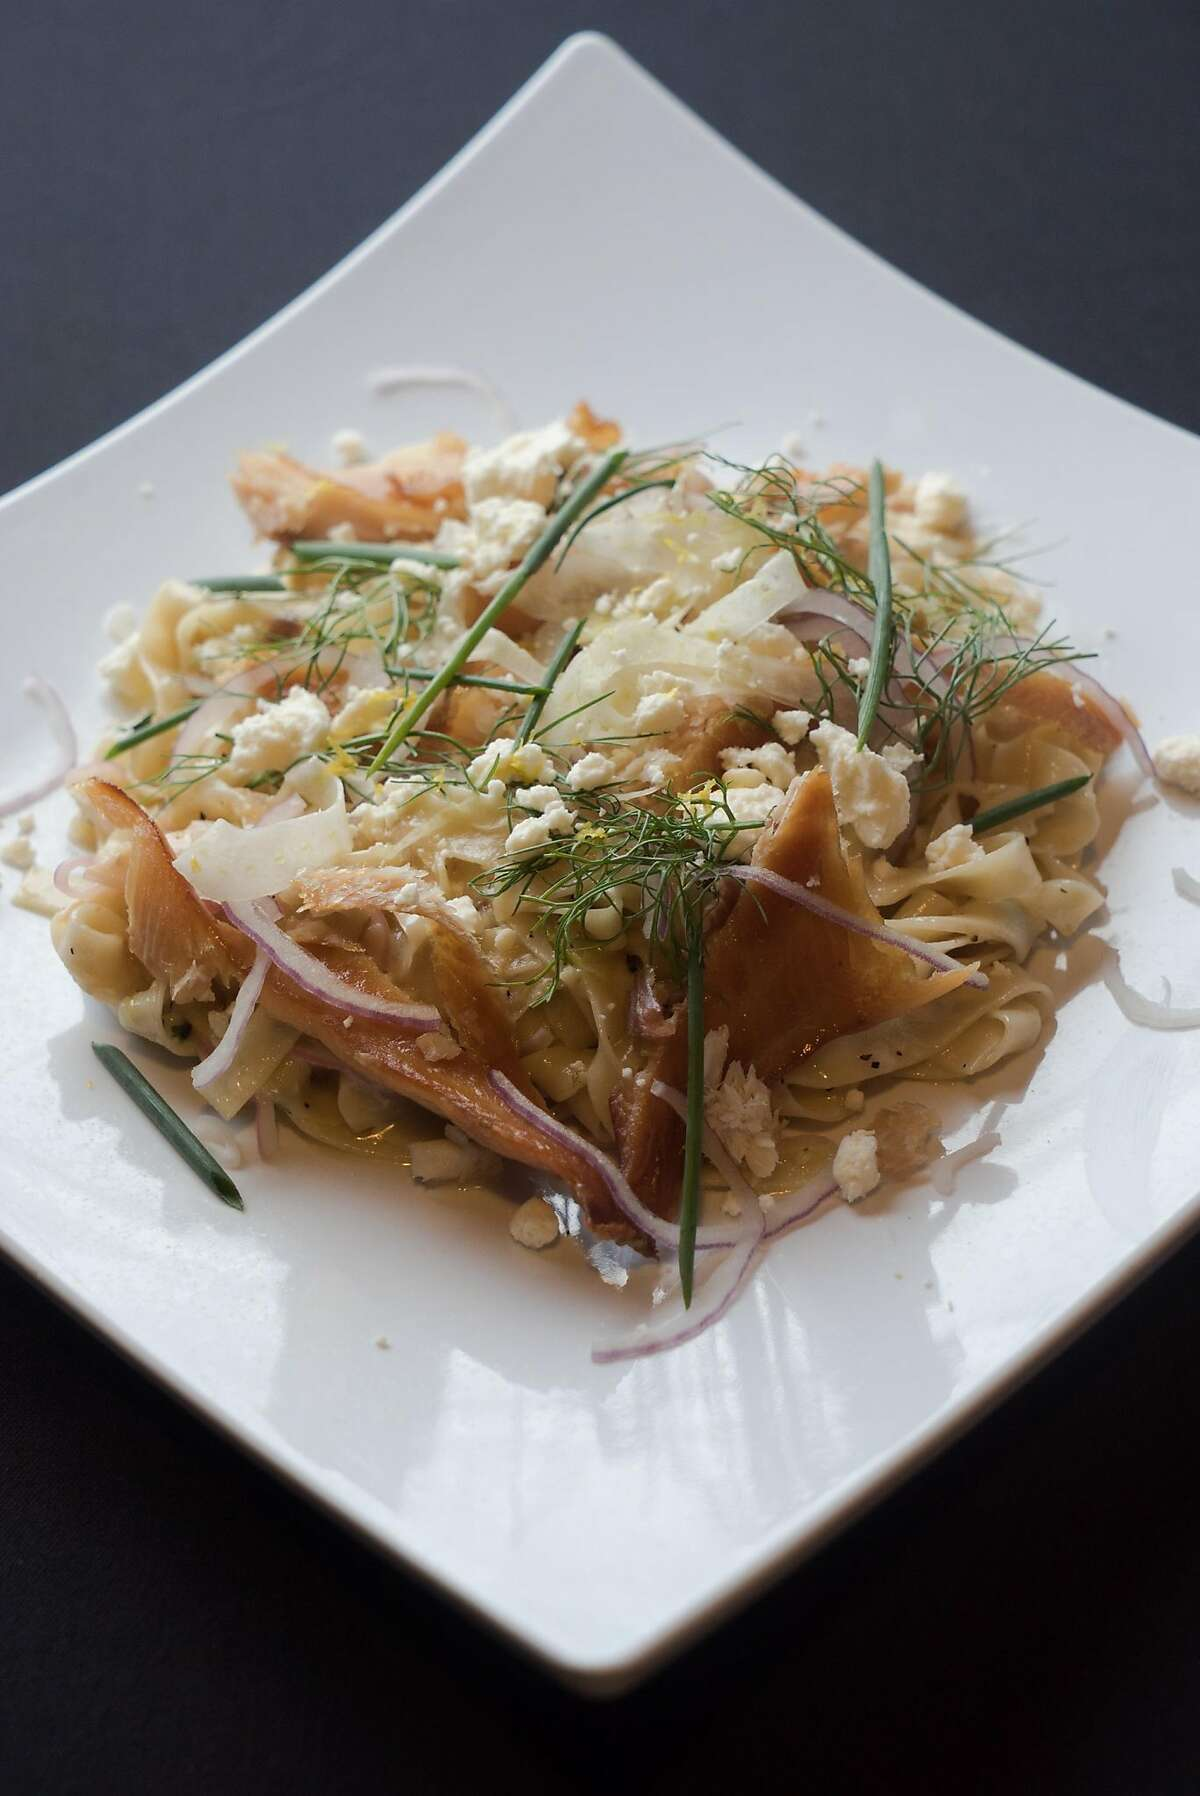 The V Restaurant Bar and Bistro serves a Smoked Idaho Trout Linguini in Murphys, Calif. on Friday, March 4, 2016. V Restaurant Bar and Bistro is one of the more popular places to dine in Calaveras County.